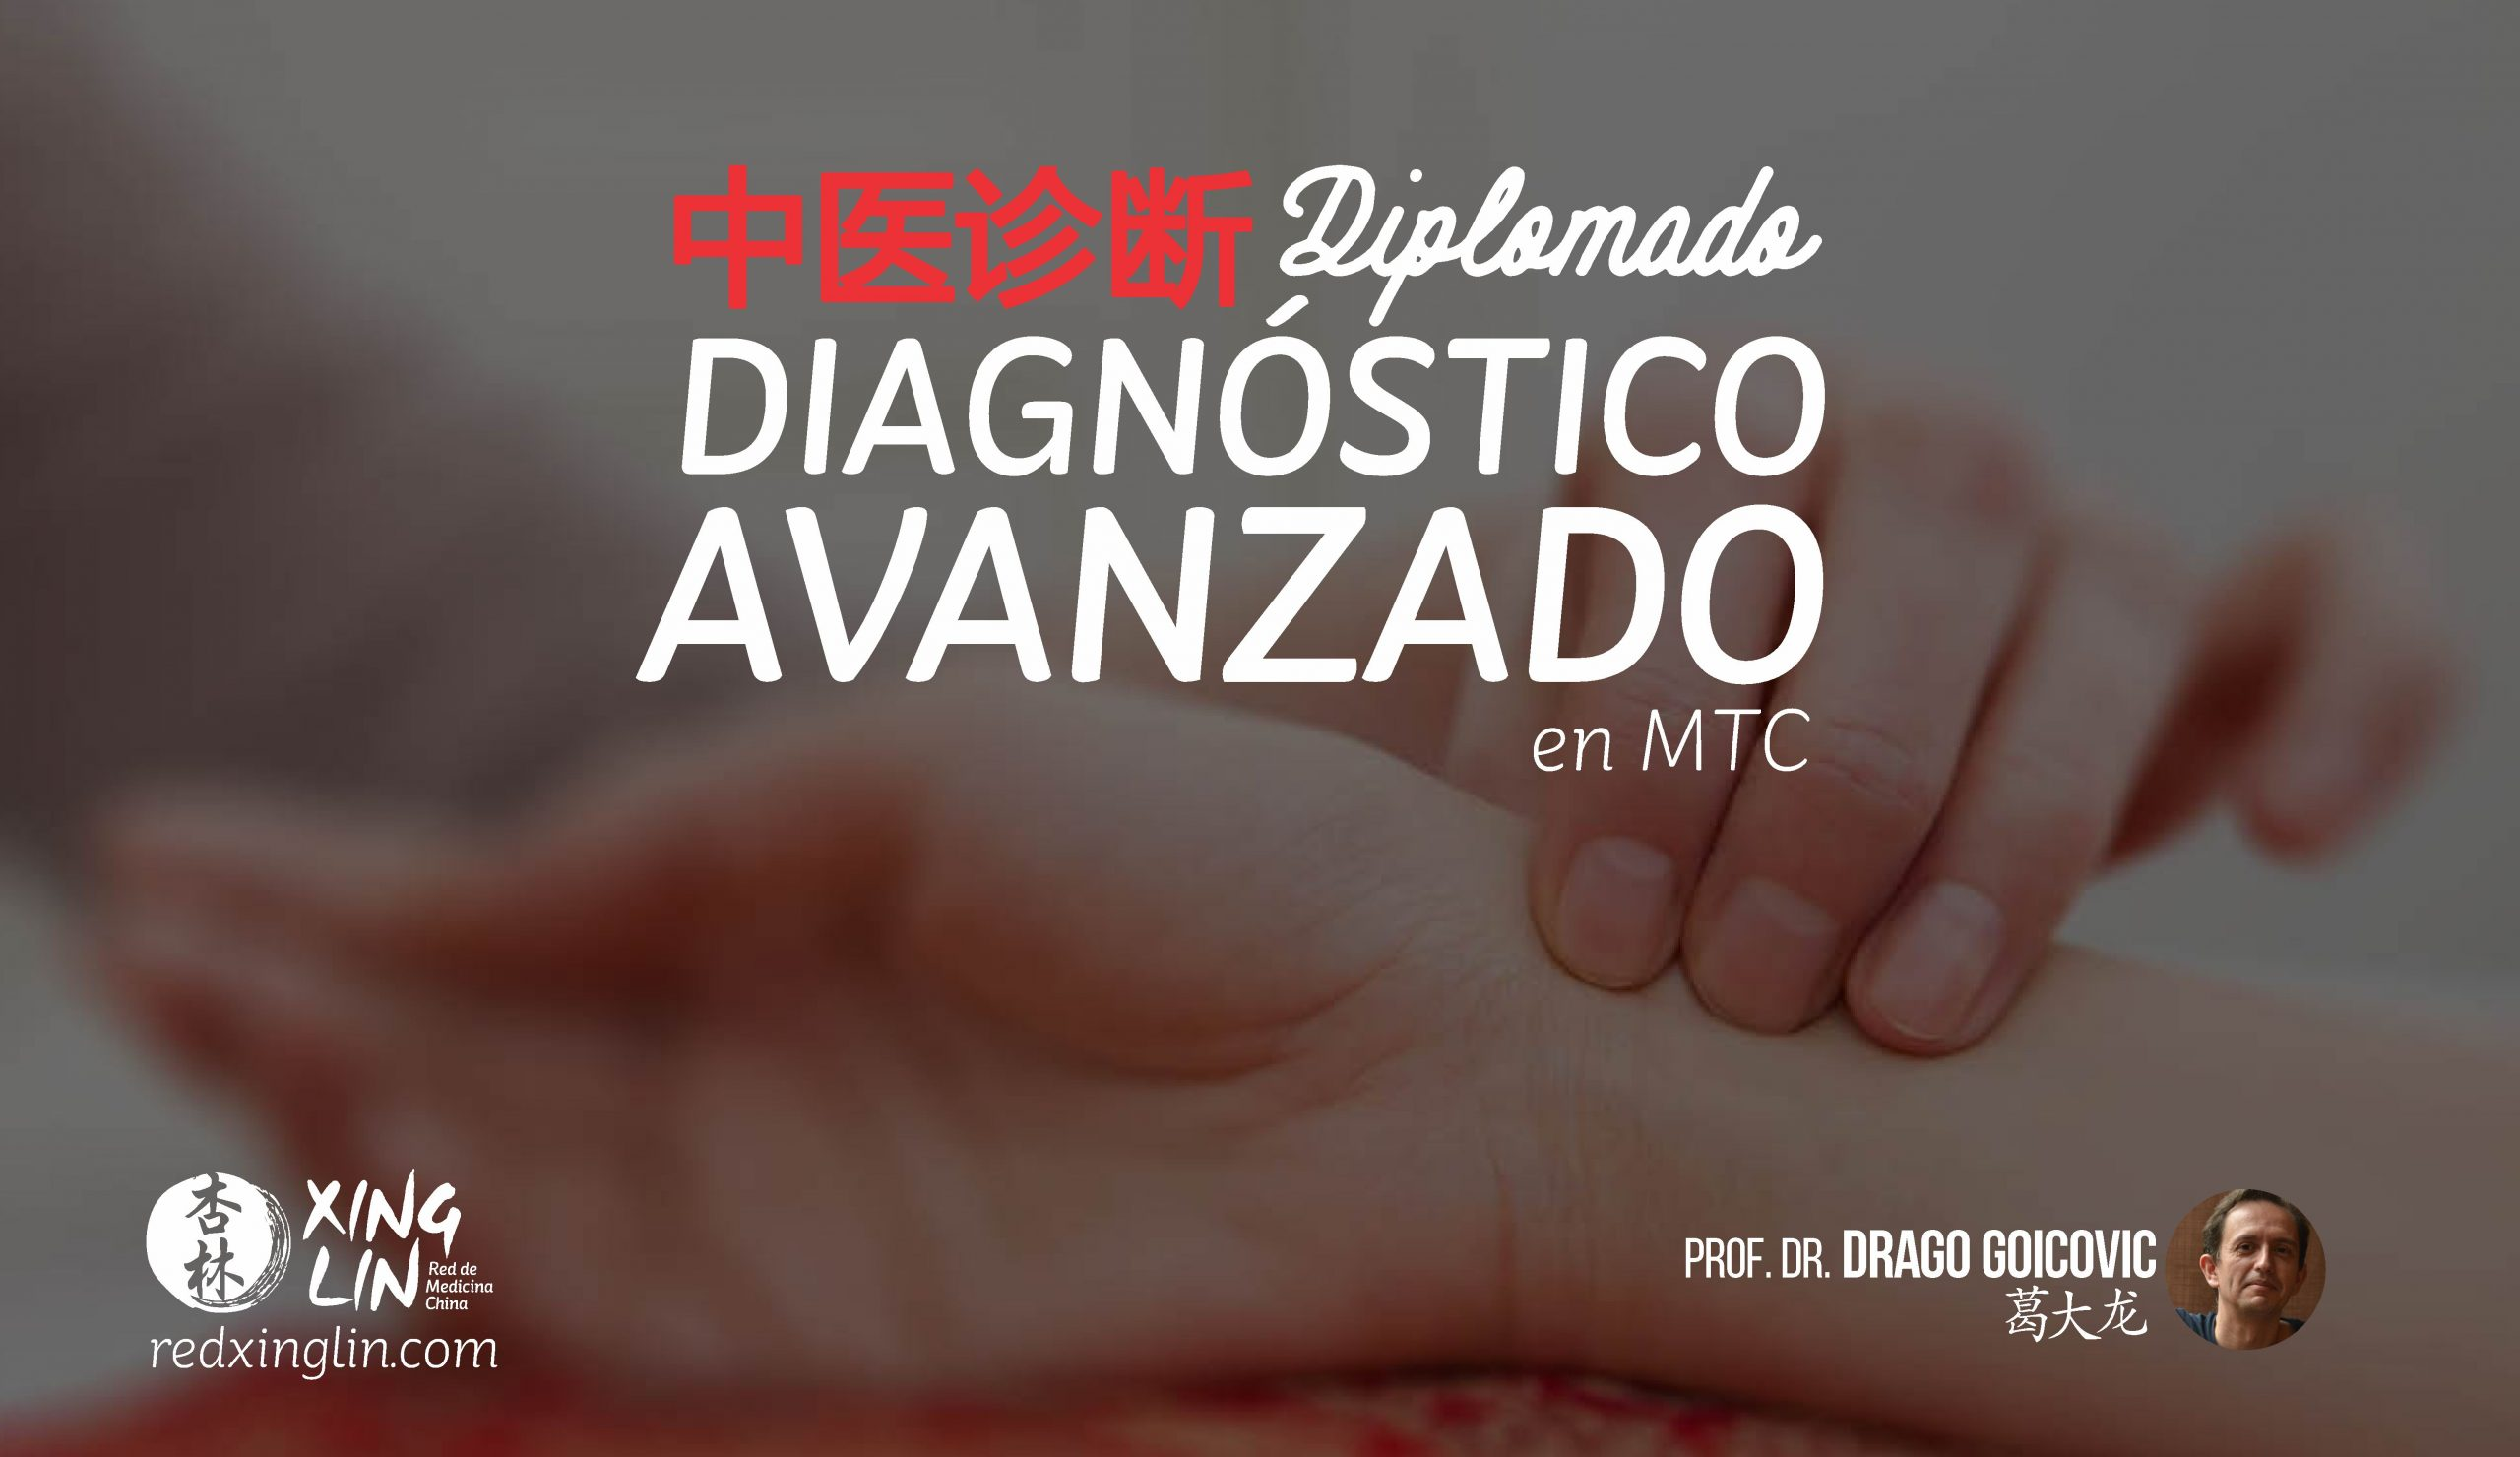 diagnostico avanzado mtc